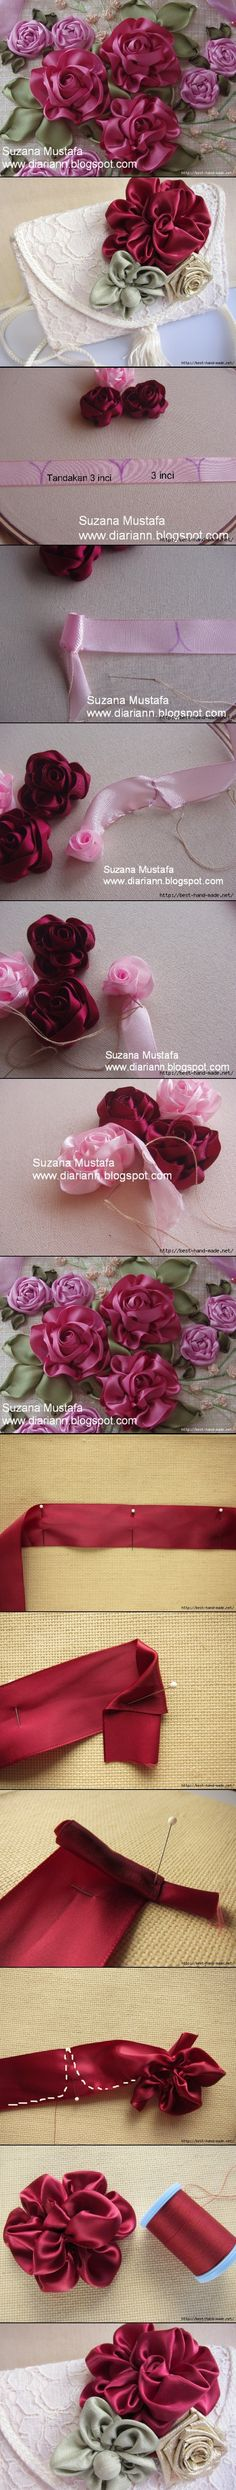 Step by step - Different Ribbon Flowers